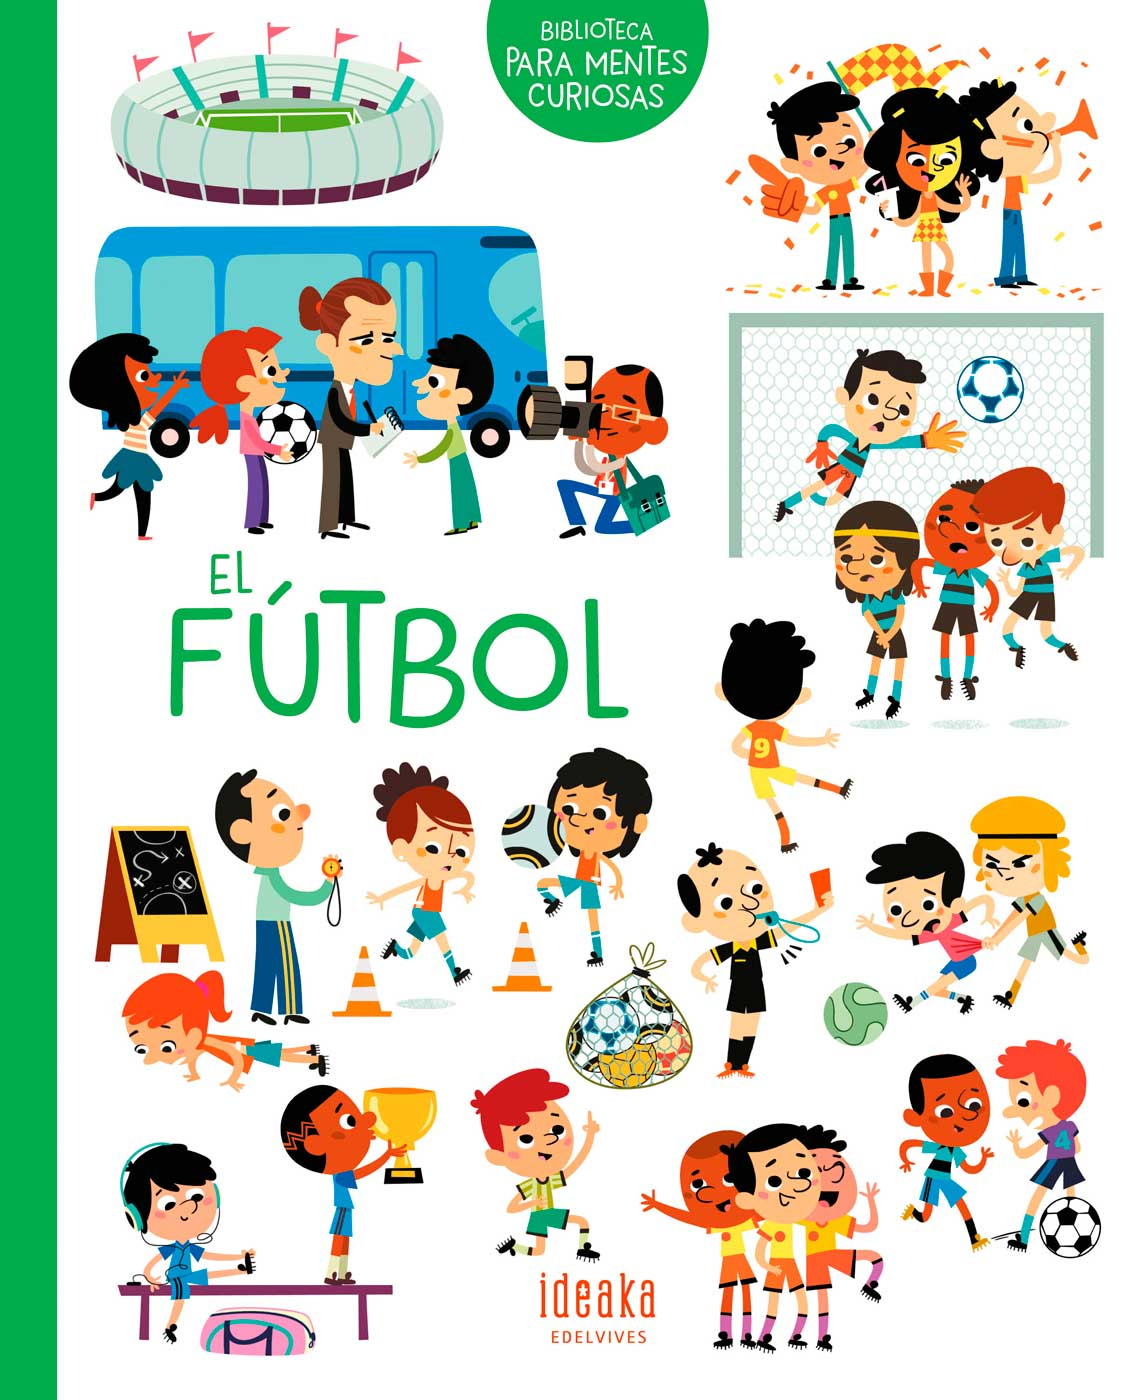 https://www.edelvives.com/es/Catalogo/p/el-futbol